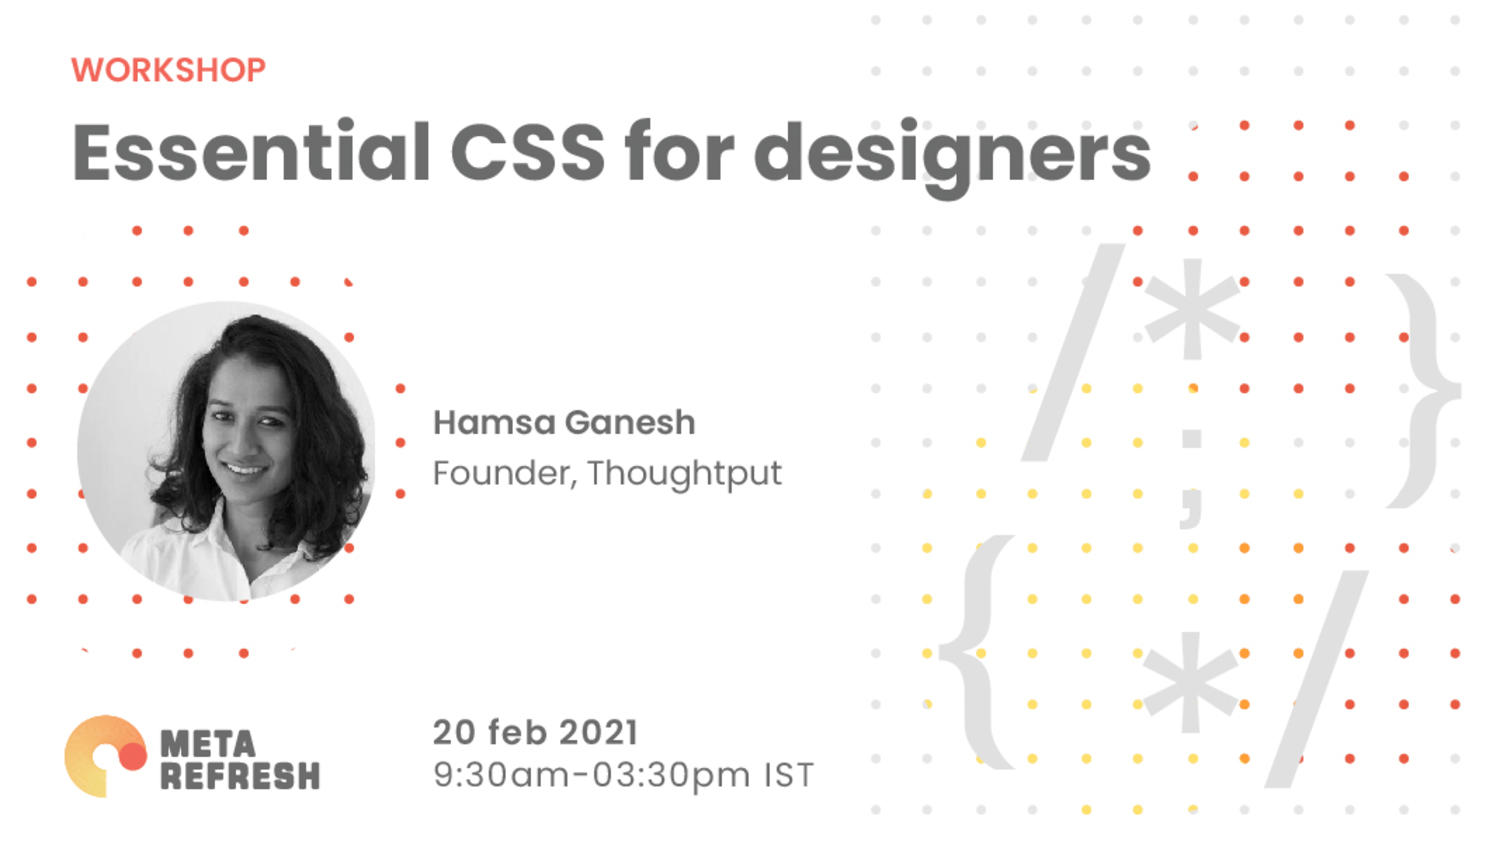 Workshop: Essential CSS for designers